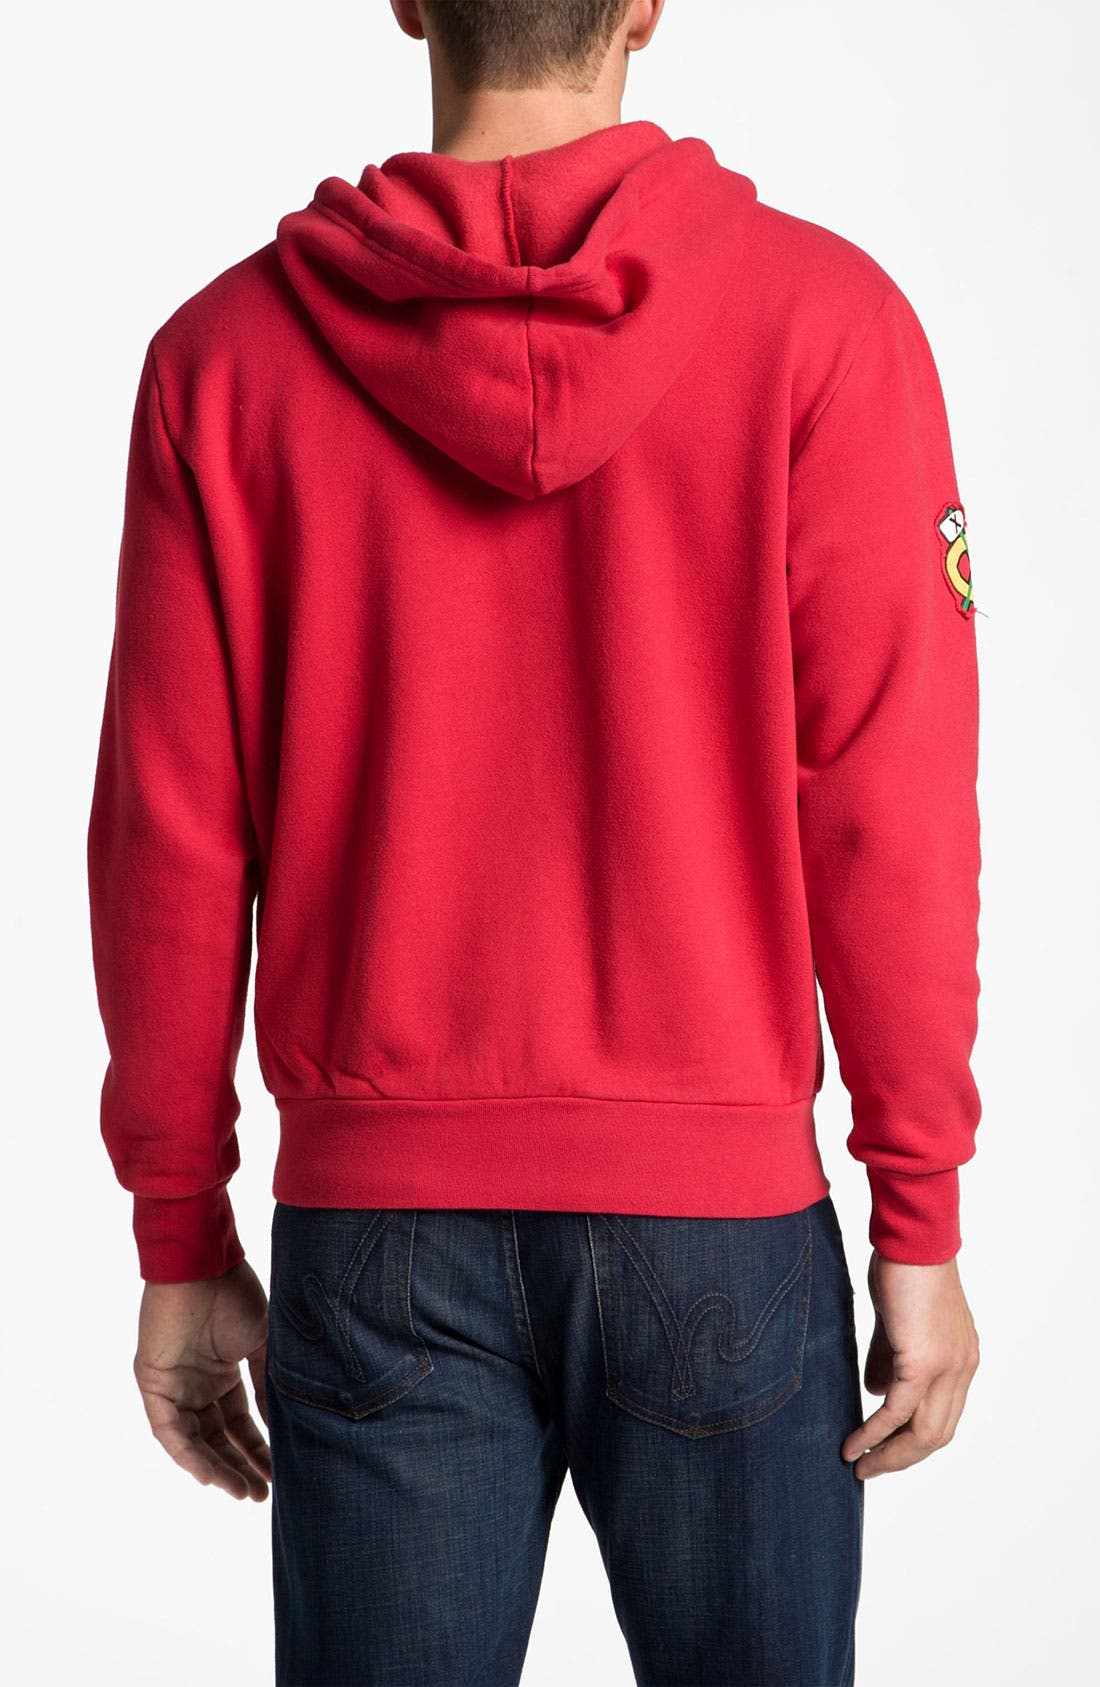 'Chicago Blackhawks' Hoodie,                             Alternate thumbnail 2, color,                             600